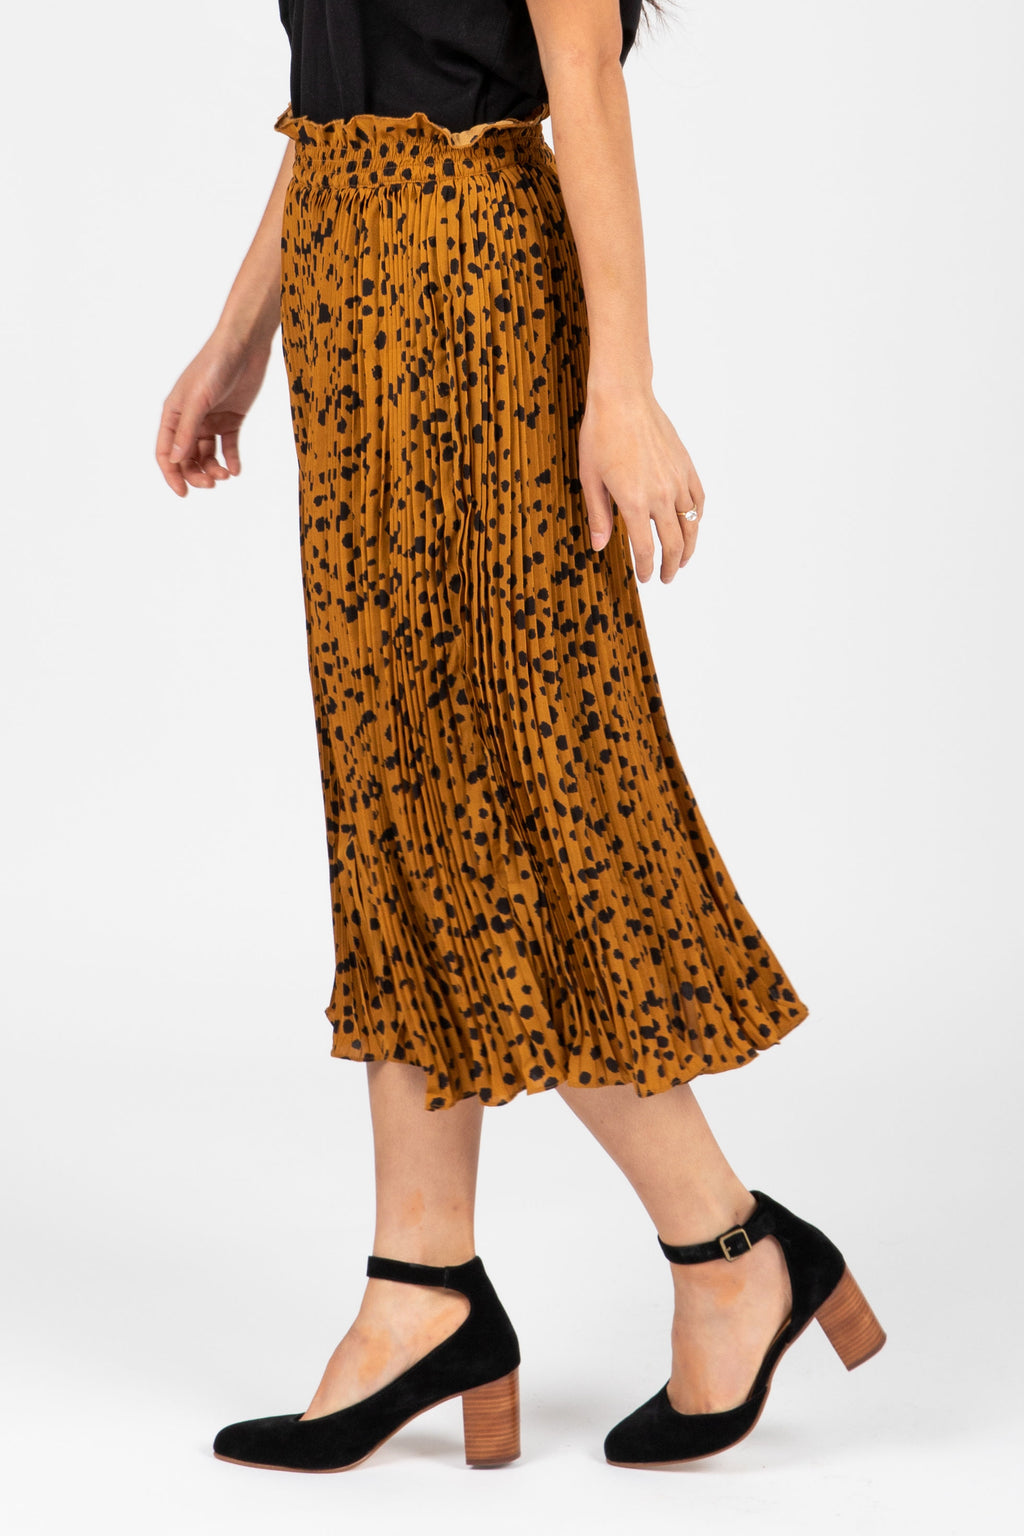 The Naldi Animal Print Smocked Skirt in Camel, studio shoot; side view